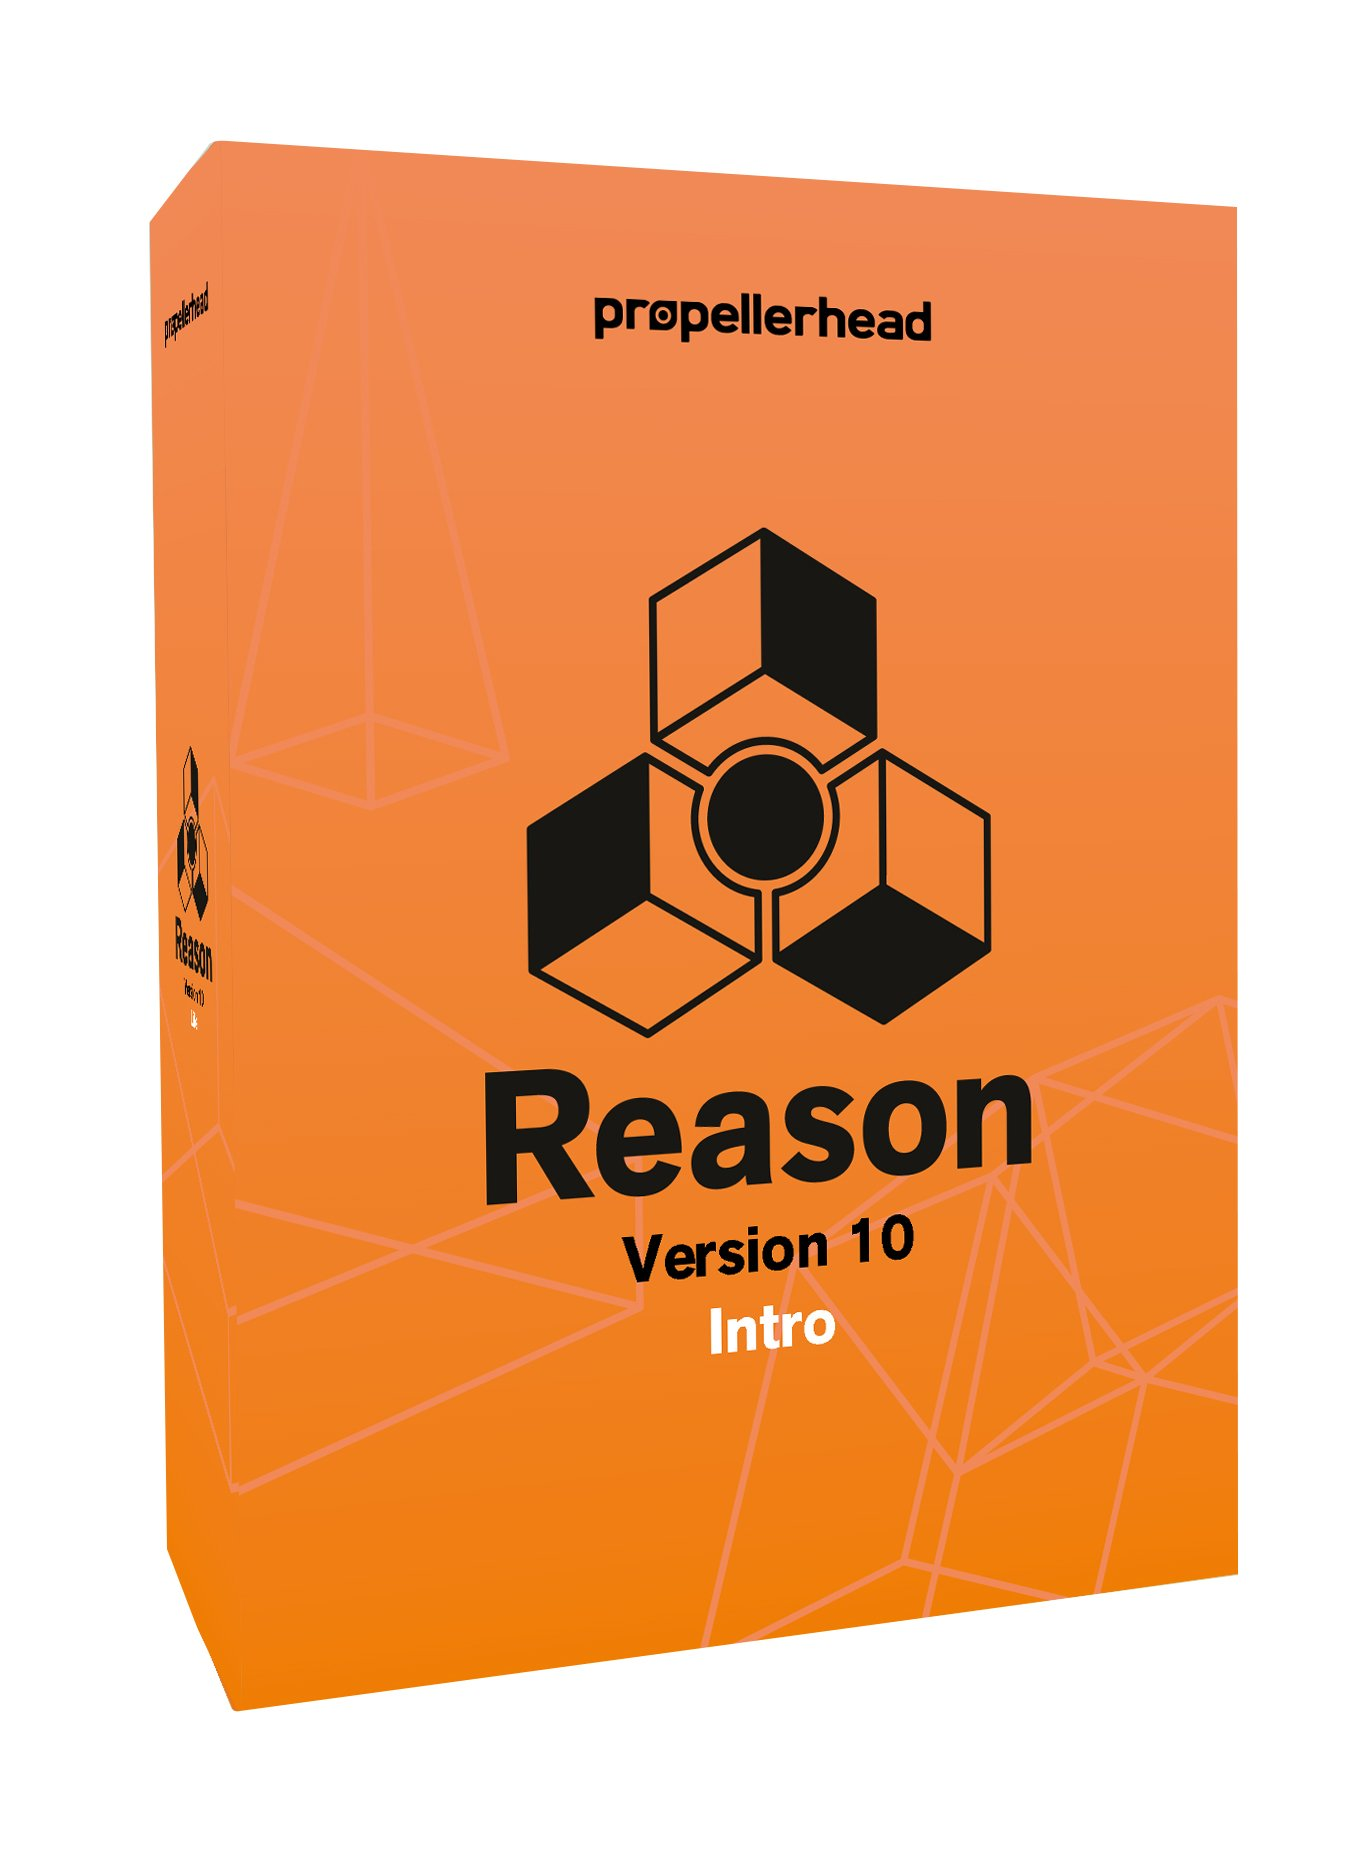 Propellerhead Multitrack Recording Software (Intro 10) by Propellerhead